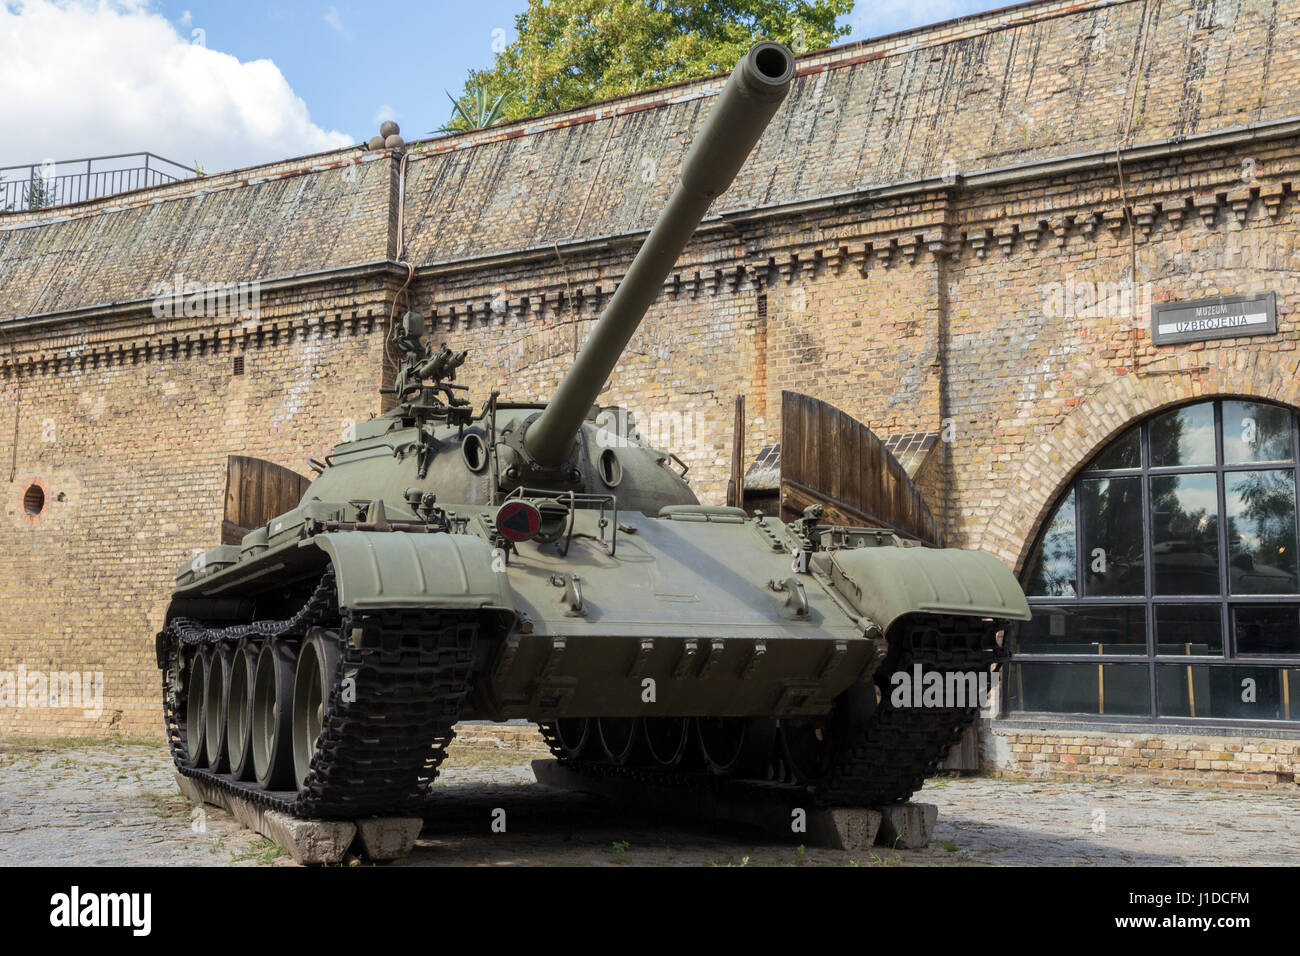 POZNAN, POLAND - AUG 20, 2014: Preserved T-55 tank on display in front of the Poznan Army Museum. Stock Photo